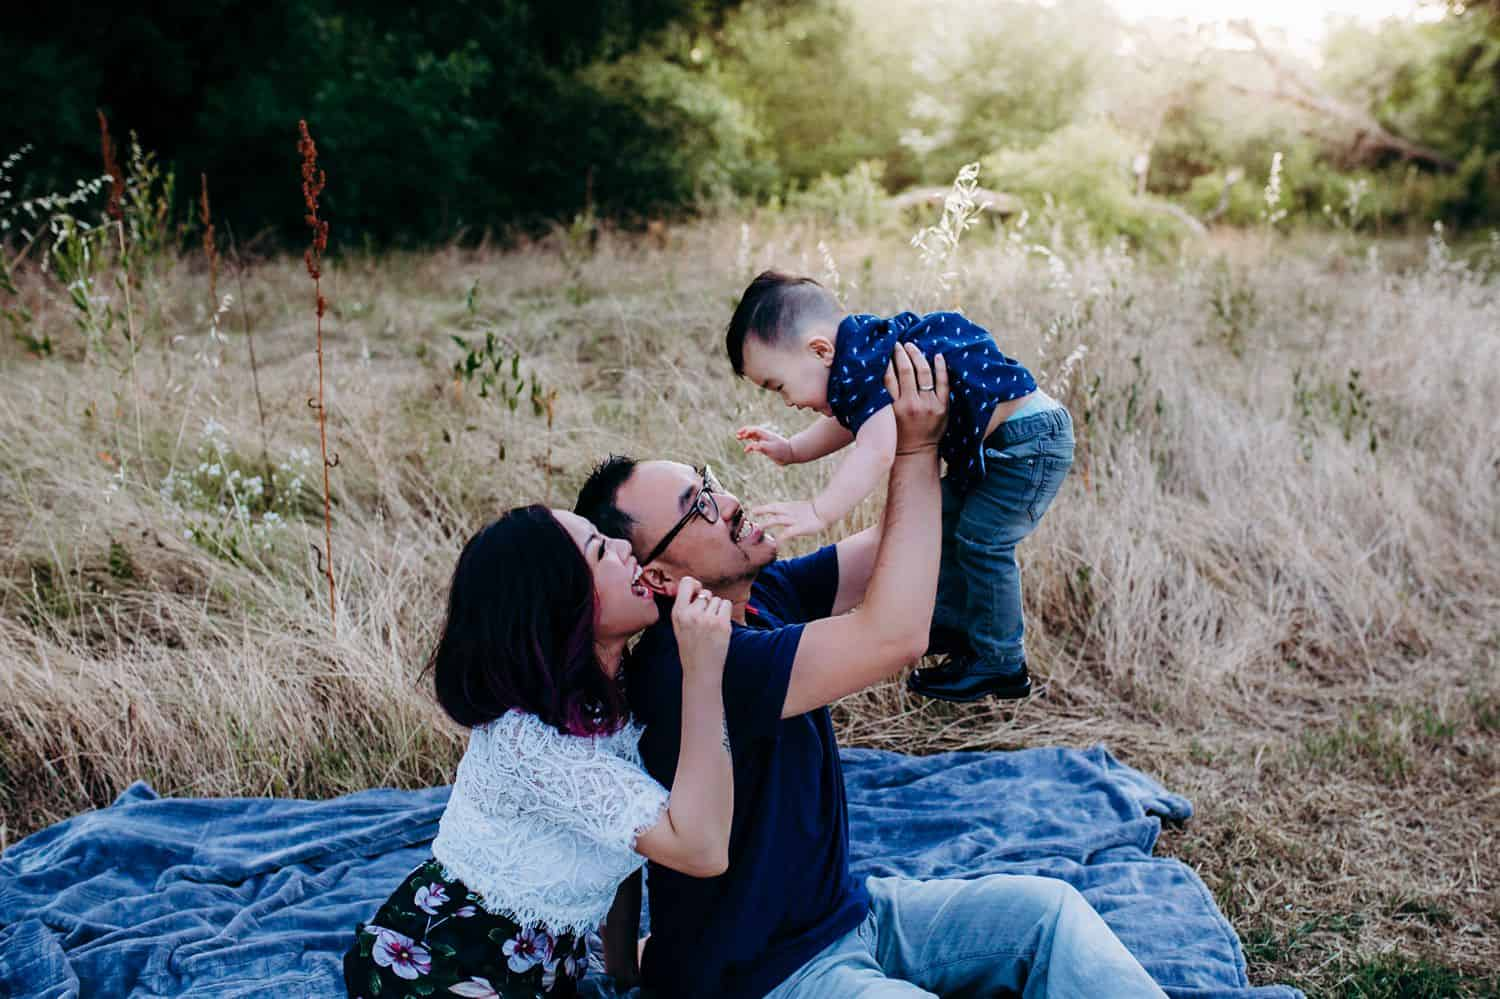 Two parents sit close together on a picnic blanket in the middle of a field while holding their toddler son up in the air and smiling.